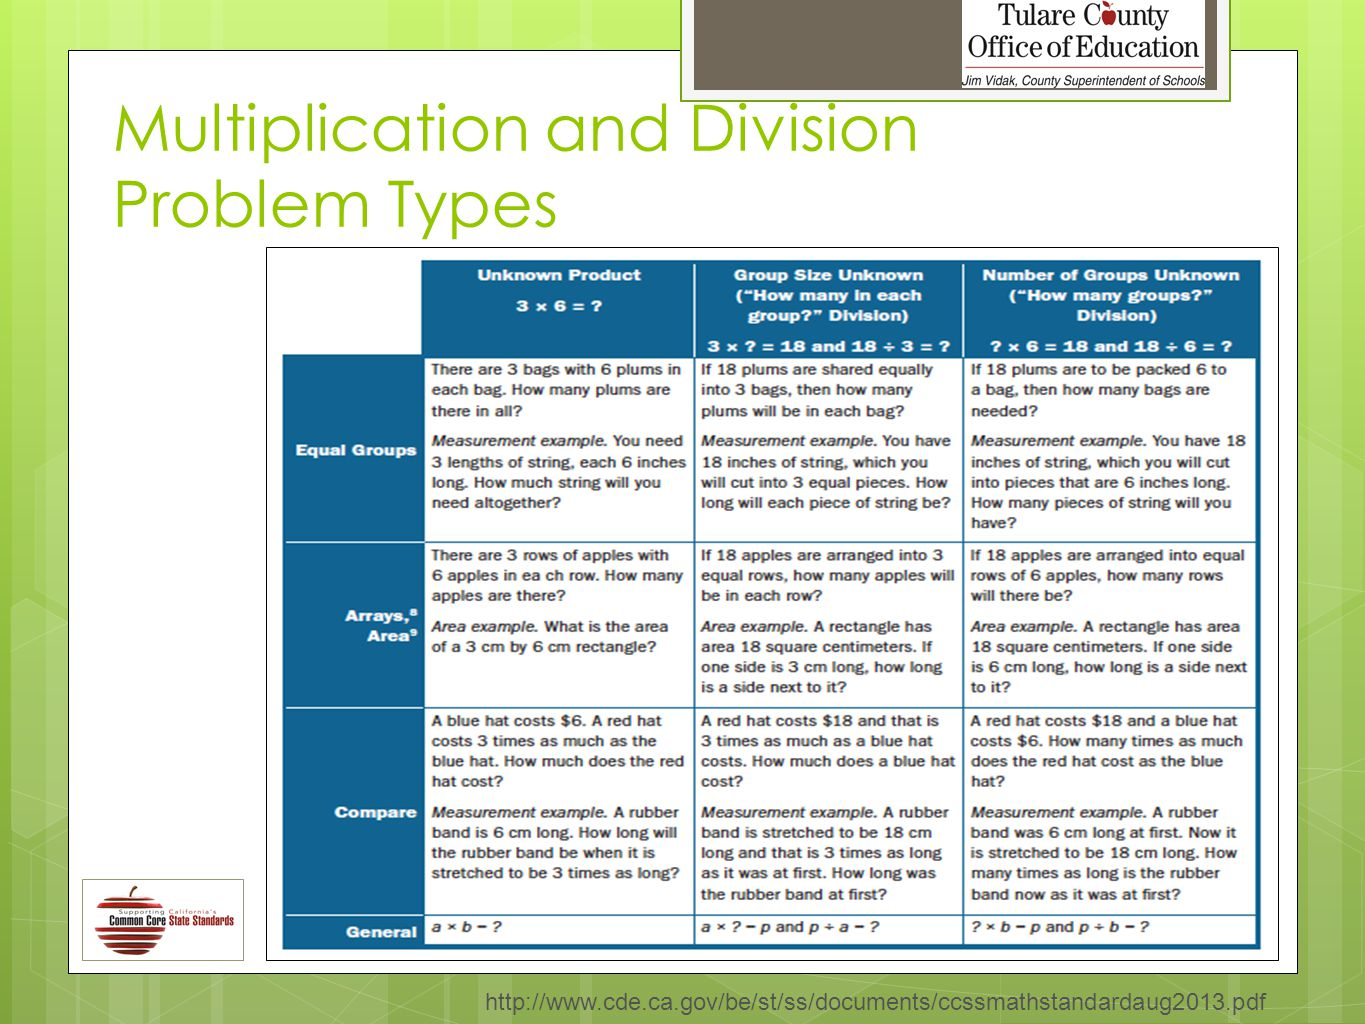 Multiplication and Division Problem Types http://www.cde.ca.gov/be/st/ss/documents/ccssmathstandardaug2013.pdf